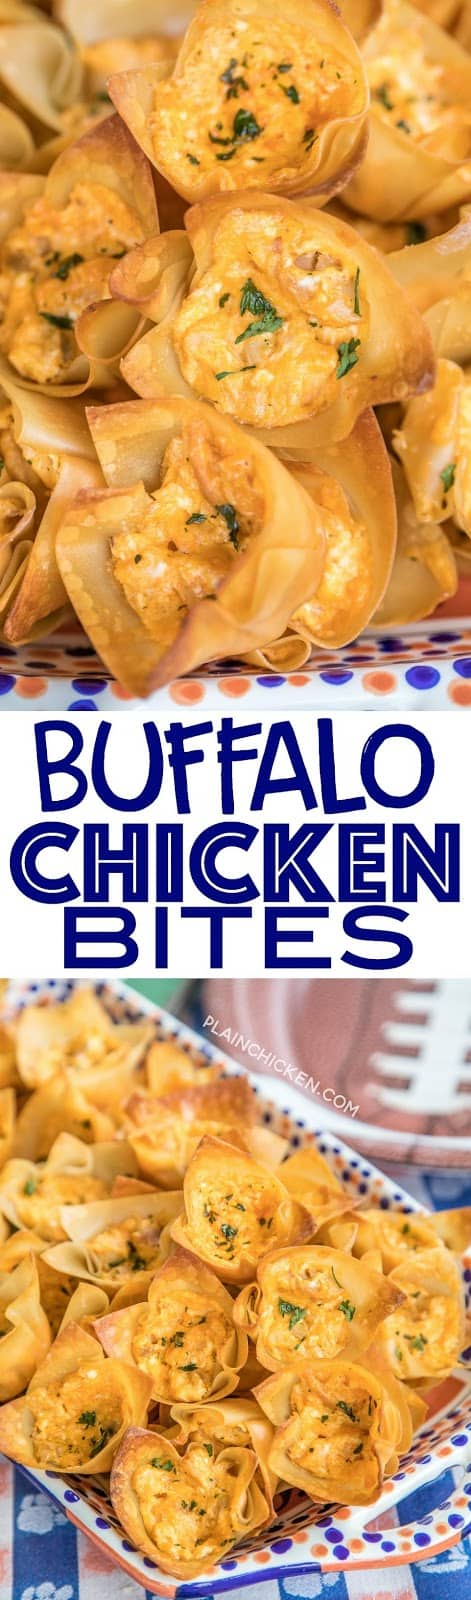 Buffalo Chicken Bites - creamy buffalo chicken dip baked in wonton wrappers. PERFECT for parties and tailgating!! I love these bite-sized appetizers!! Can adjust hot sauce to make the dip fit your tastes. Everyone RAVES about this yummy appetizer recipe! Always gone in a flash!